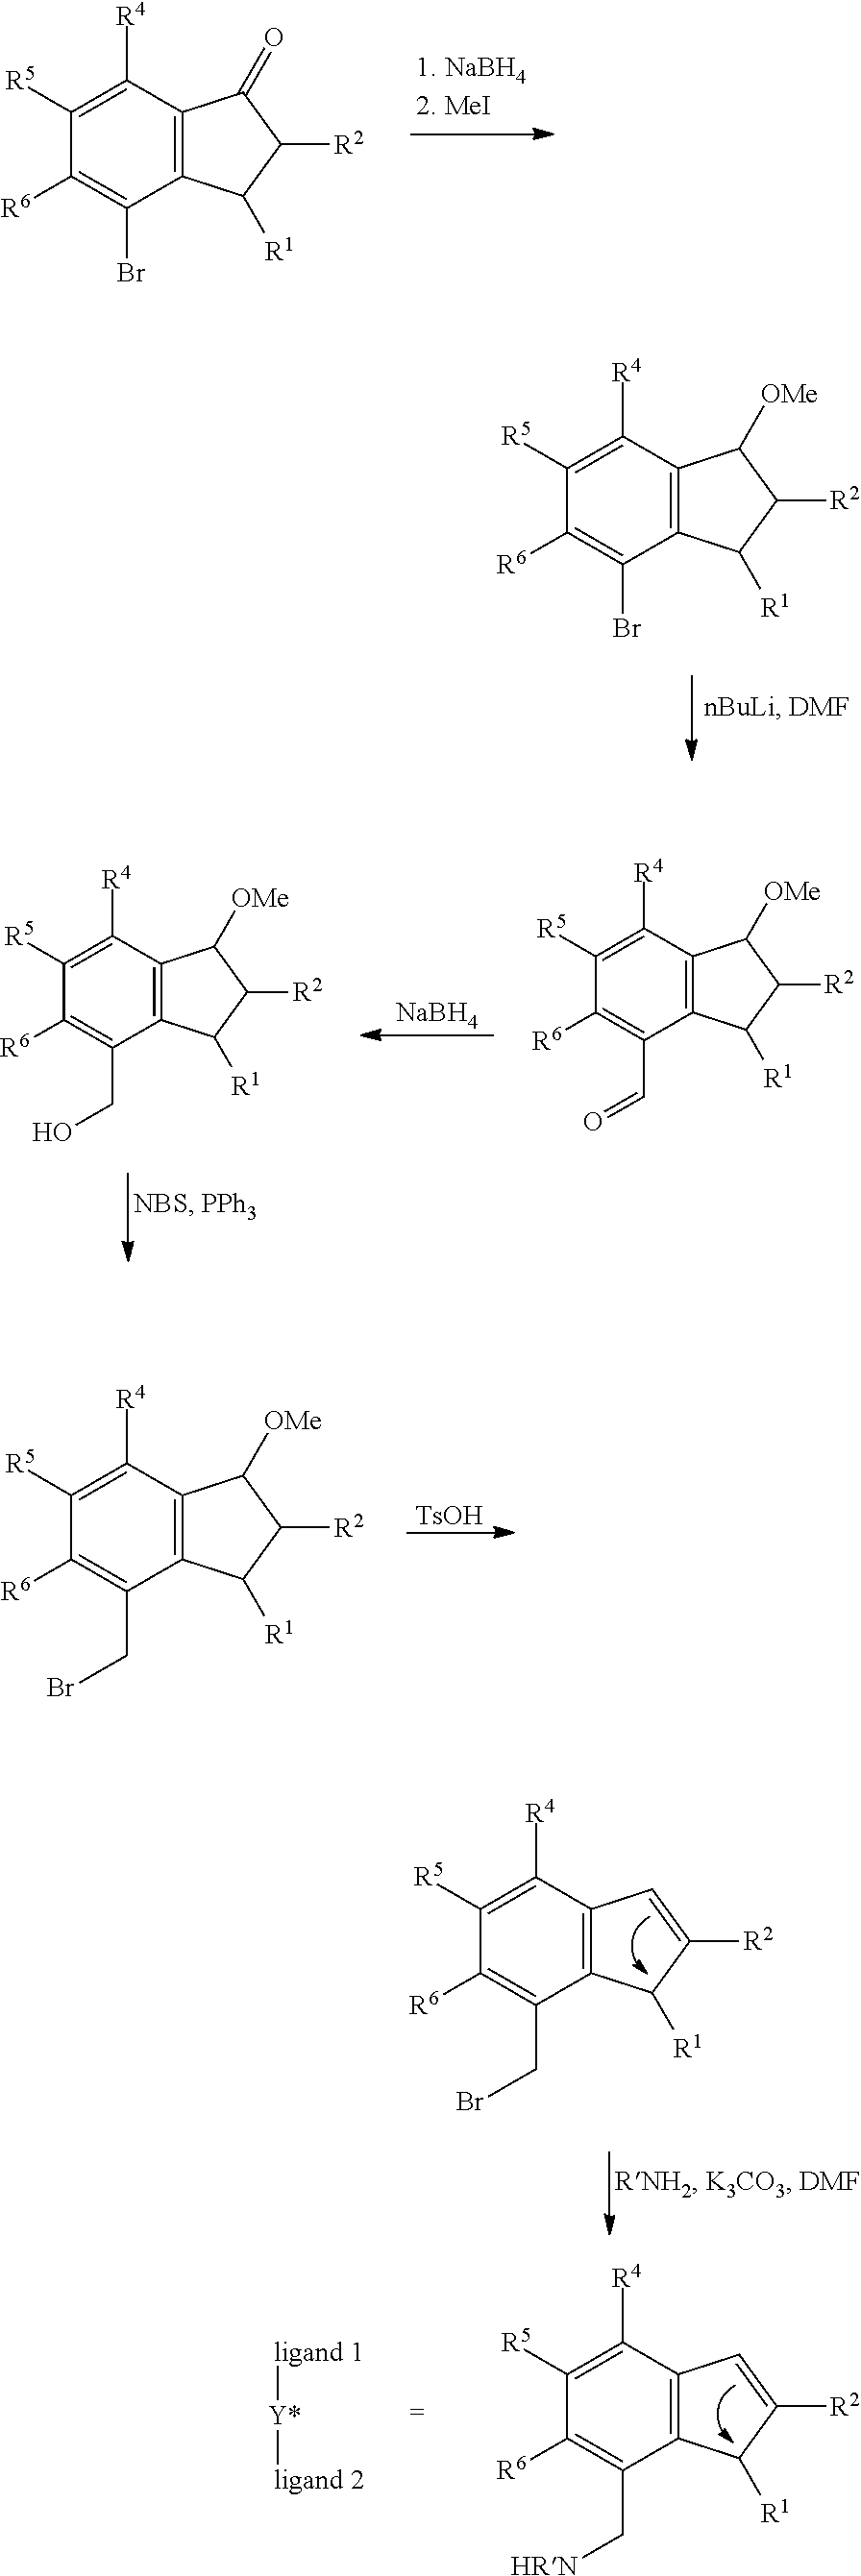 Us8058461b2 Mono Indenyl Transition Metal Compounds And Sisir Set Ts 222 Figure Us08058461 20111115 C00009